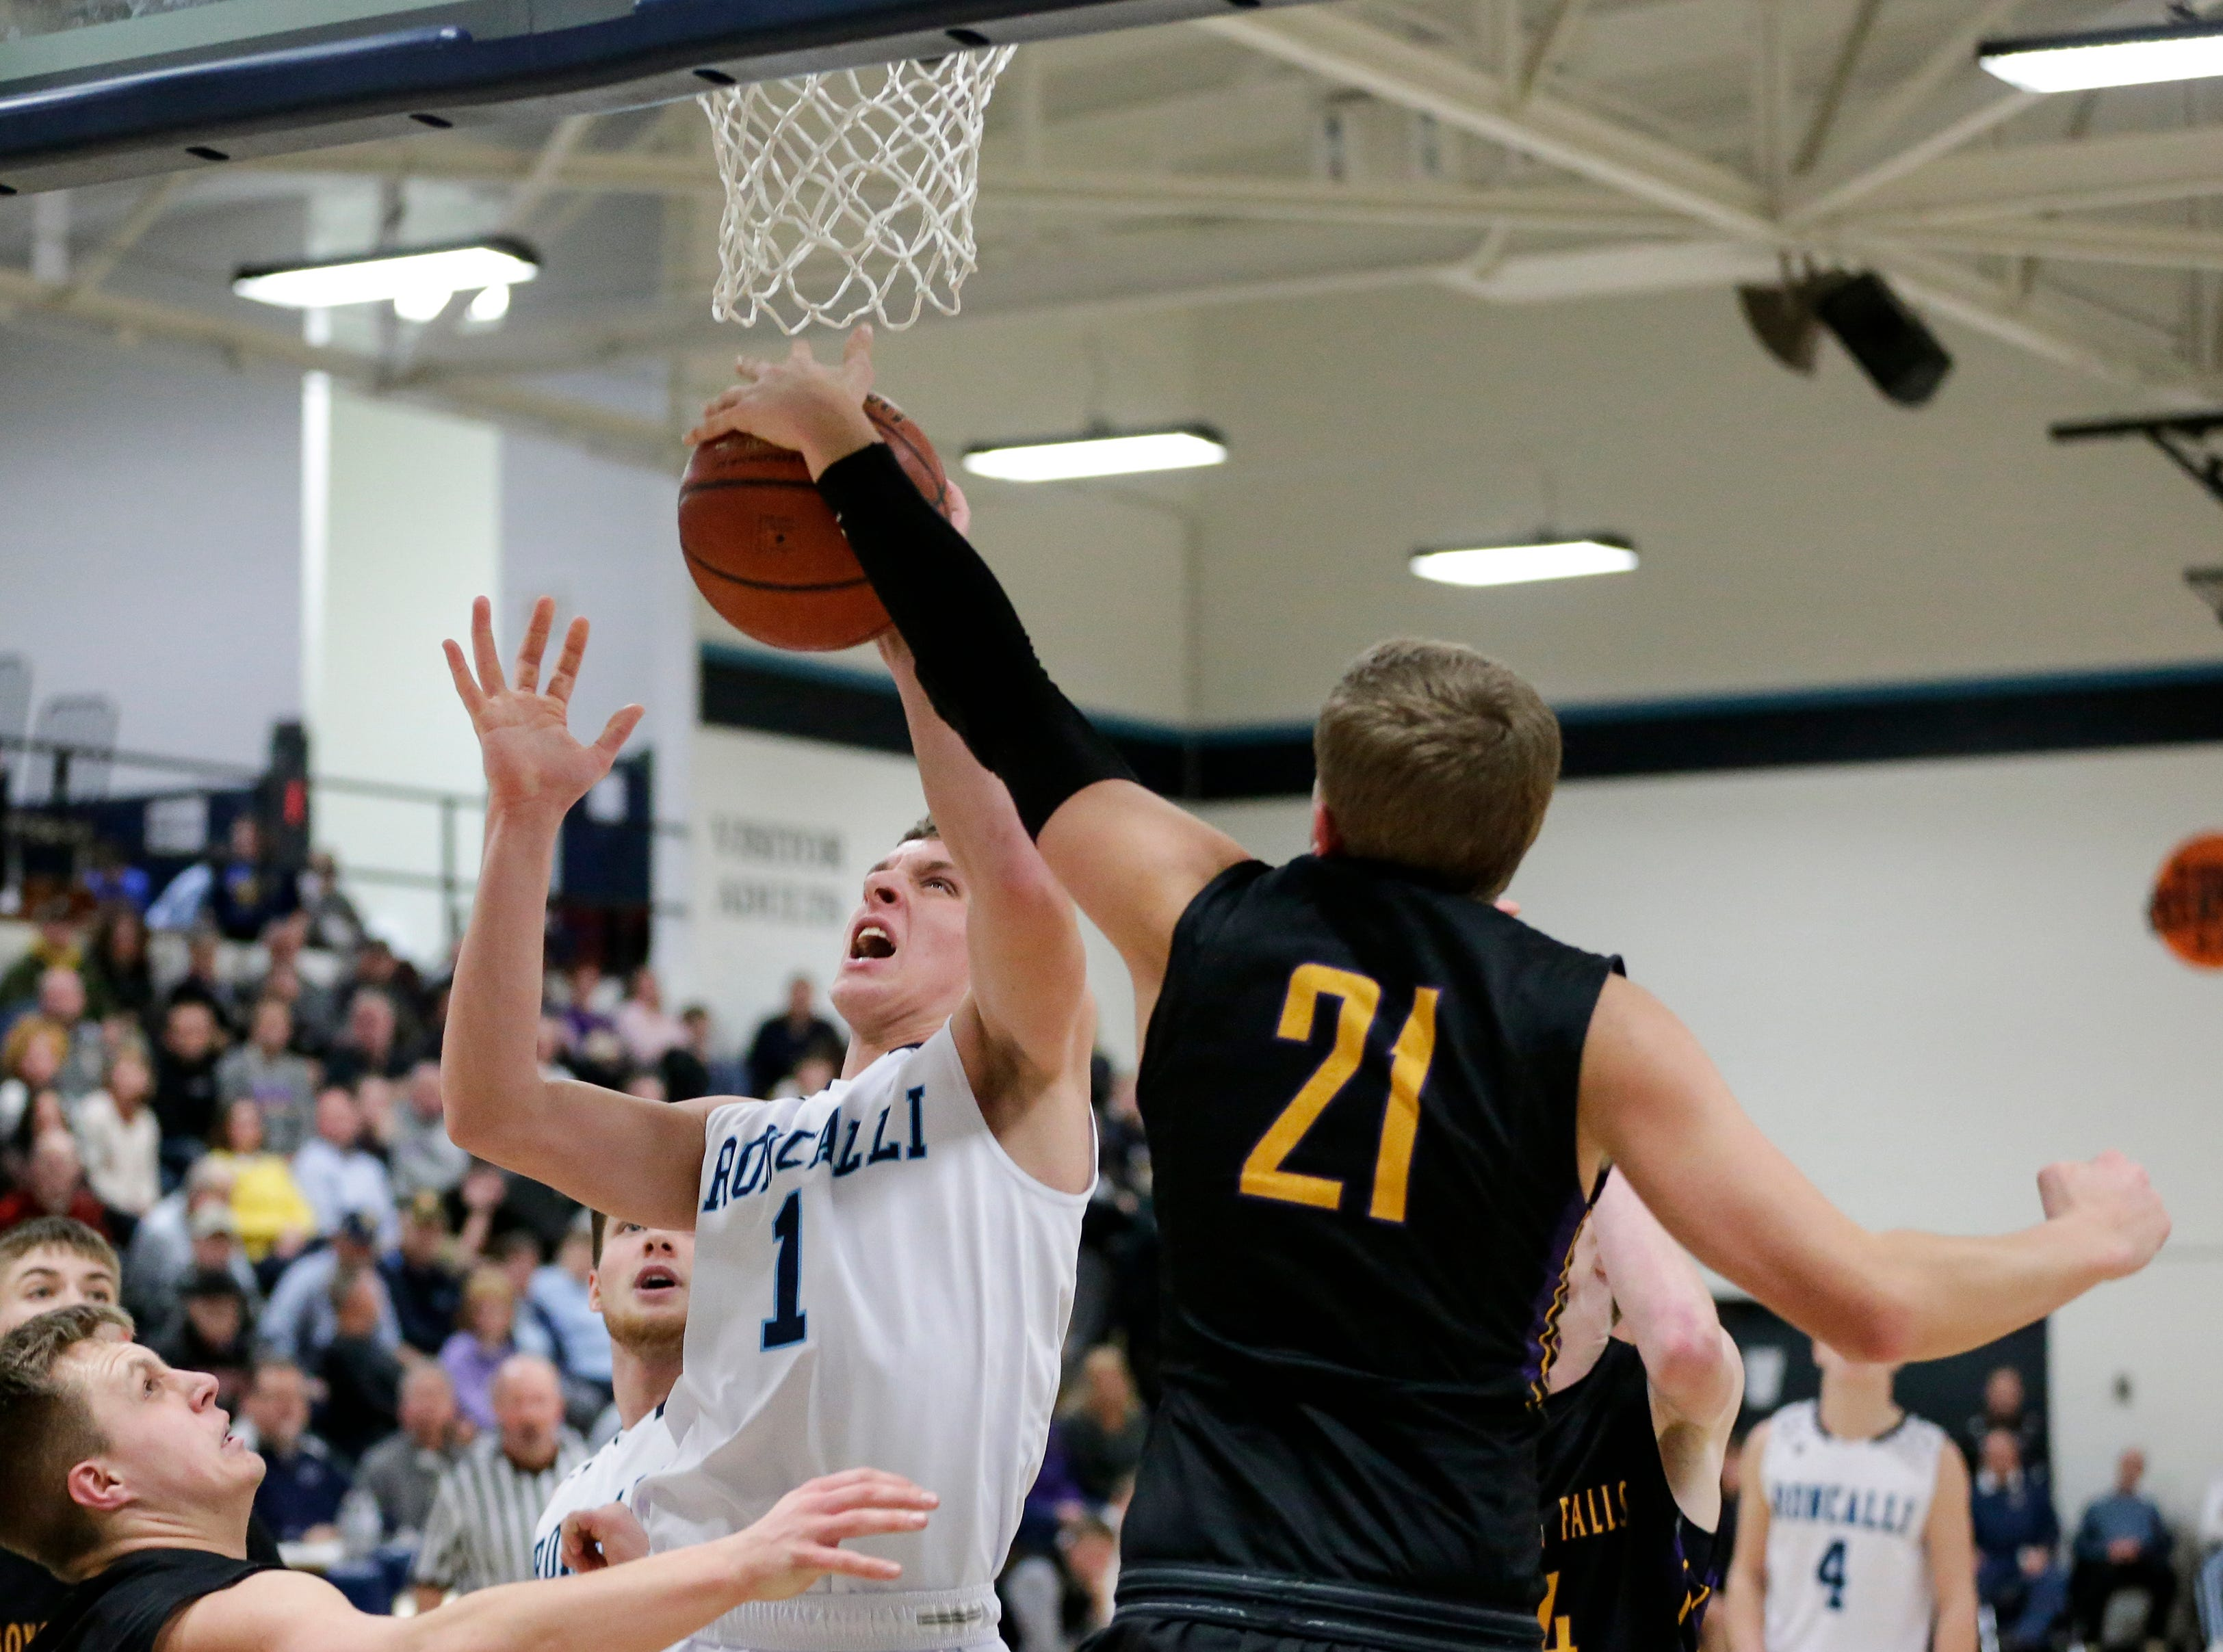 Sheboygan Falls' Connor Spielvogel blocks a shot by Roncalli's Daniel Burgarino during an EWC matchup at Roncalli High School Thursday, January 10, 2019, in Manitowoc, Wis. Joshua Clark/USA TODAY NETWORK-Wisconsin